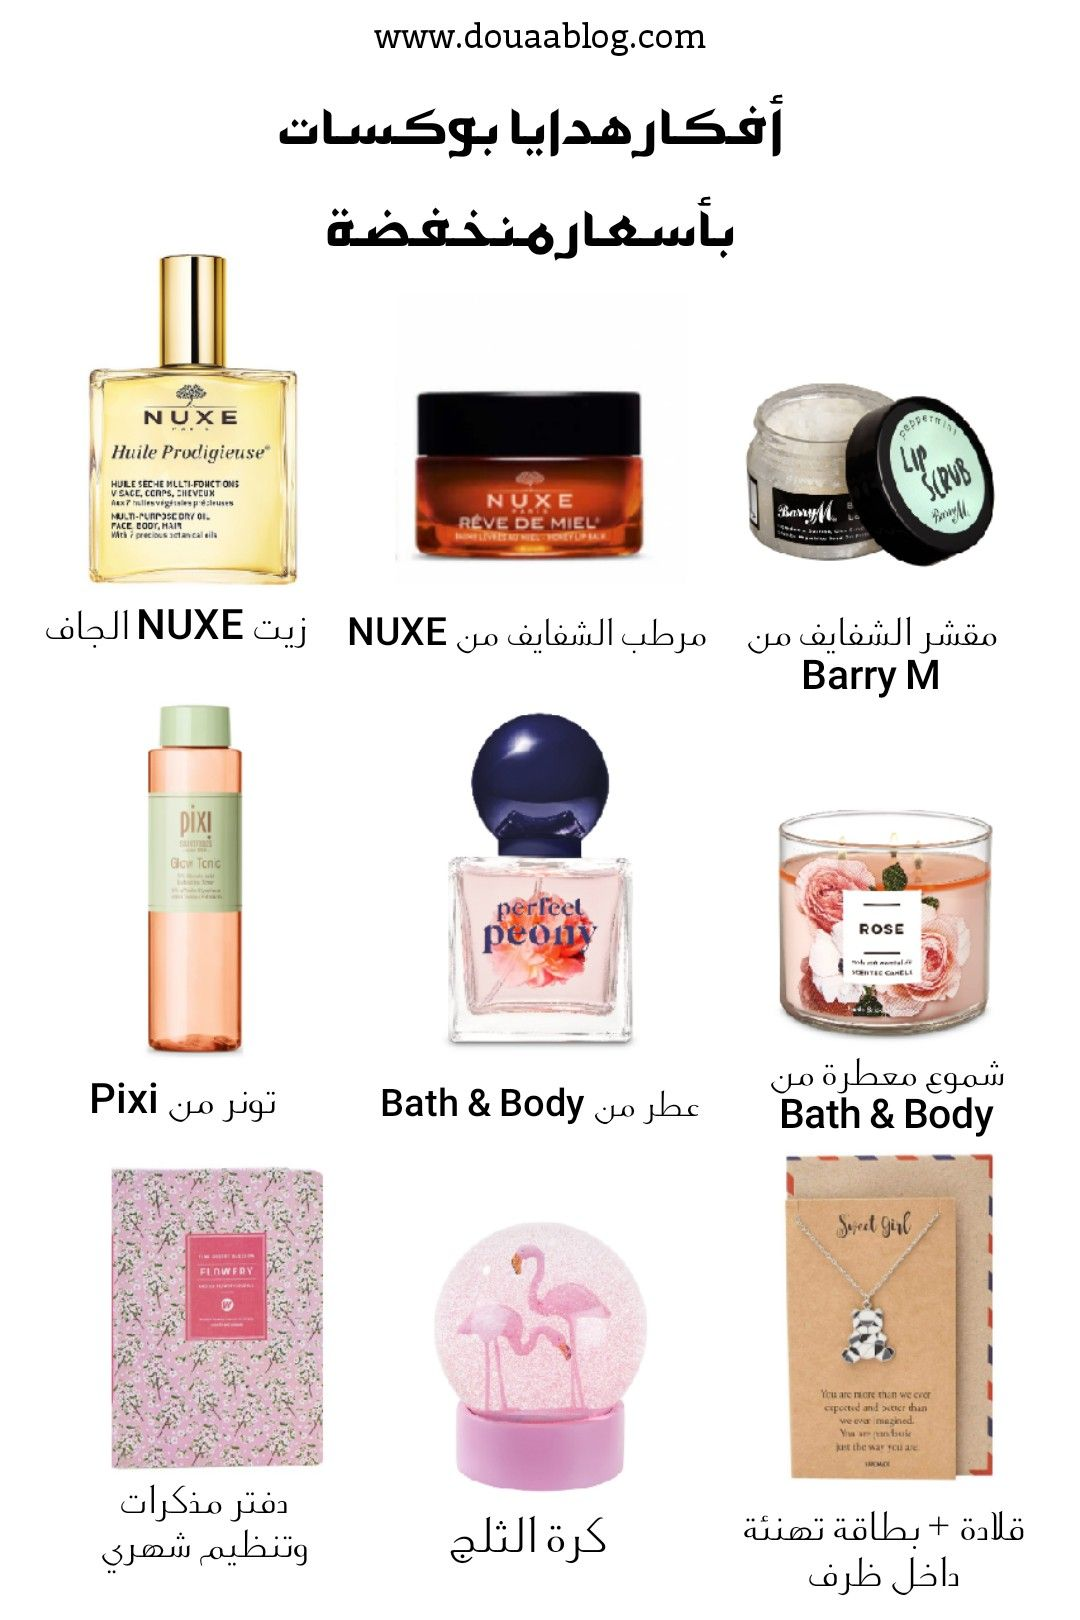 أفكار هدايا بوكسات Beautiful Arabic Words Gifts Bath And Body